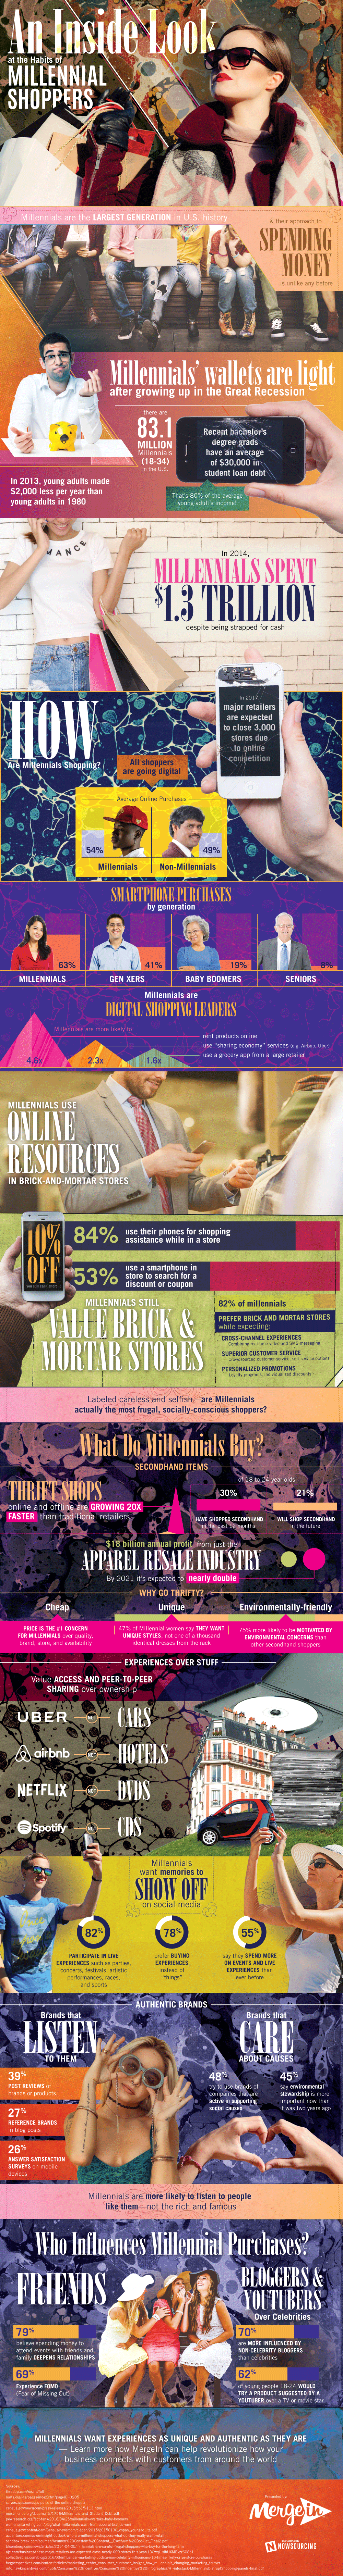 The Millennial Shopper: A Breed Apart - Infographic